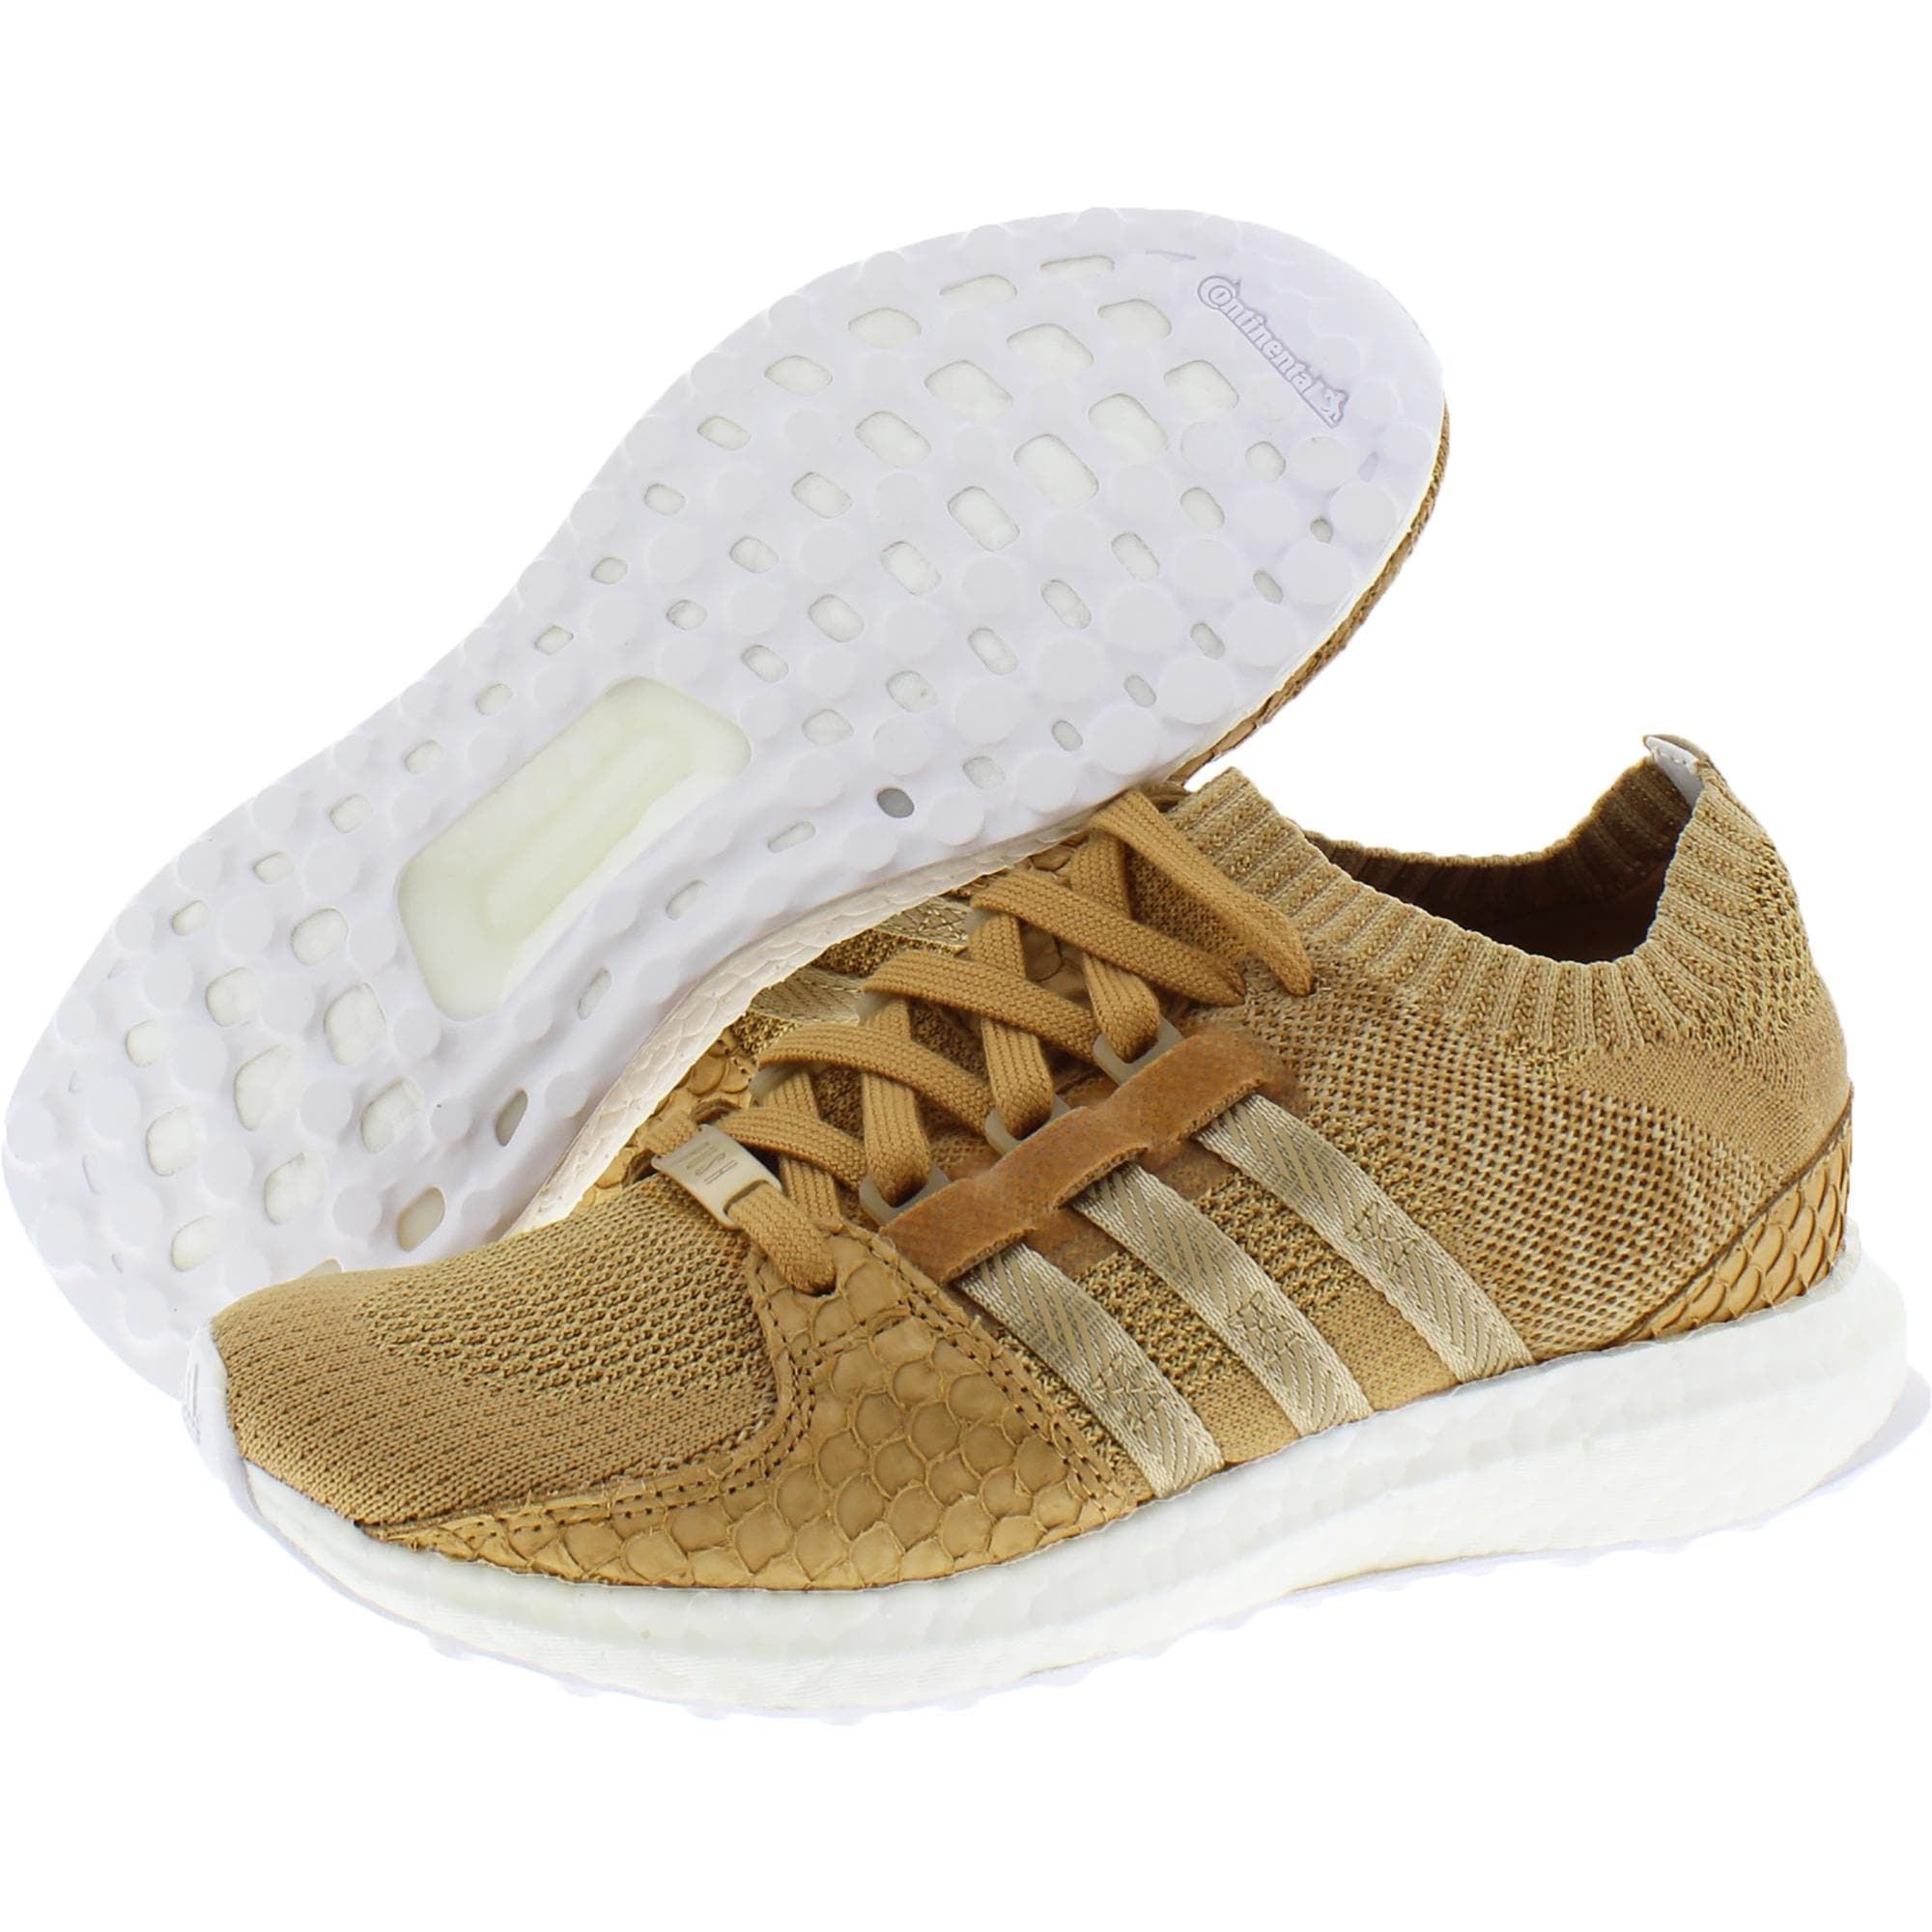 Adidas Mens EQT Support Ultra King Running Shoes Knit Track - Brown Paper Bag/White - 5 Medium (D)